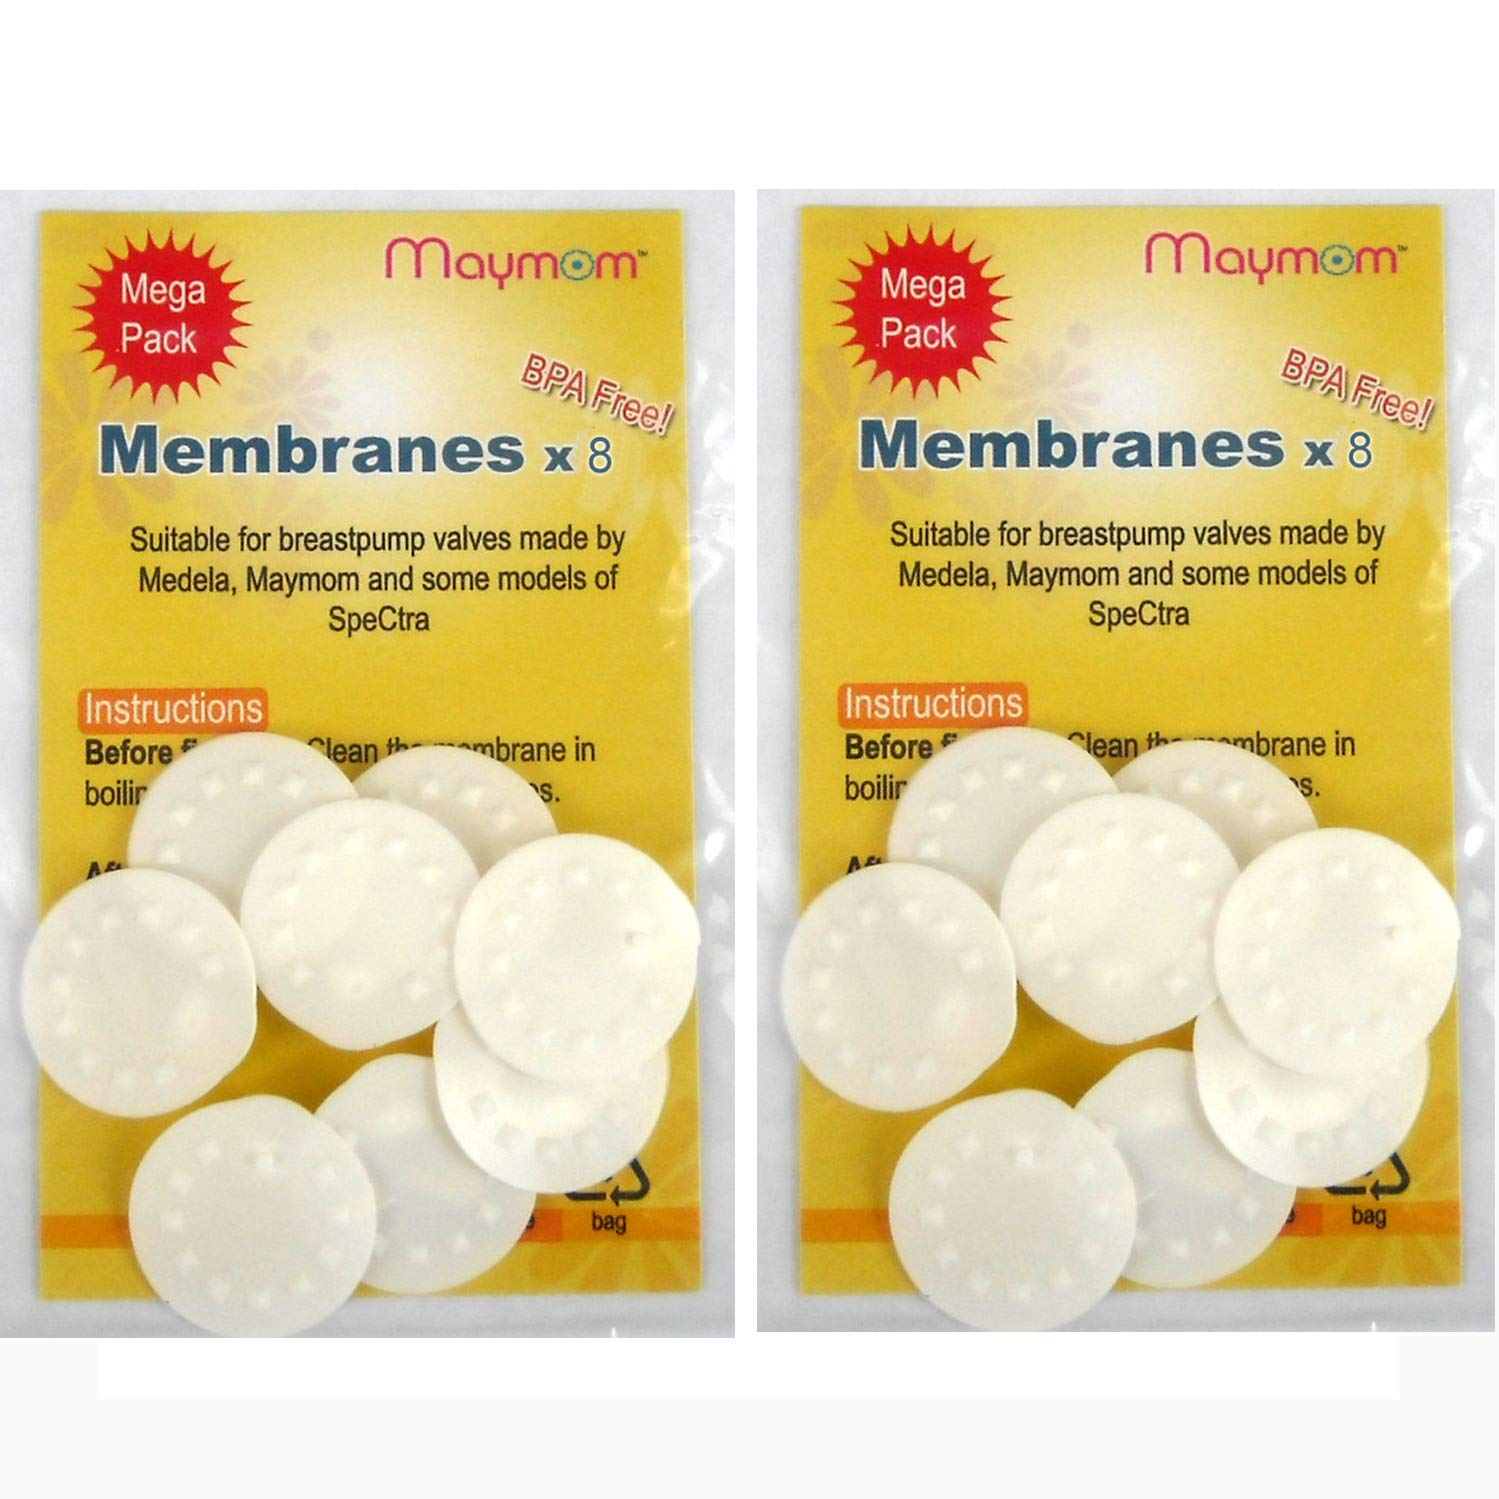 Lactina Swing and Symphony Pumps Maymom Replacement Membranes for Medela Medela Pump in Style Breastpump 8-Pack by Maymom